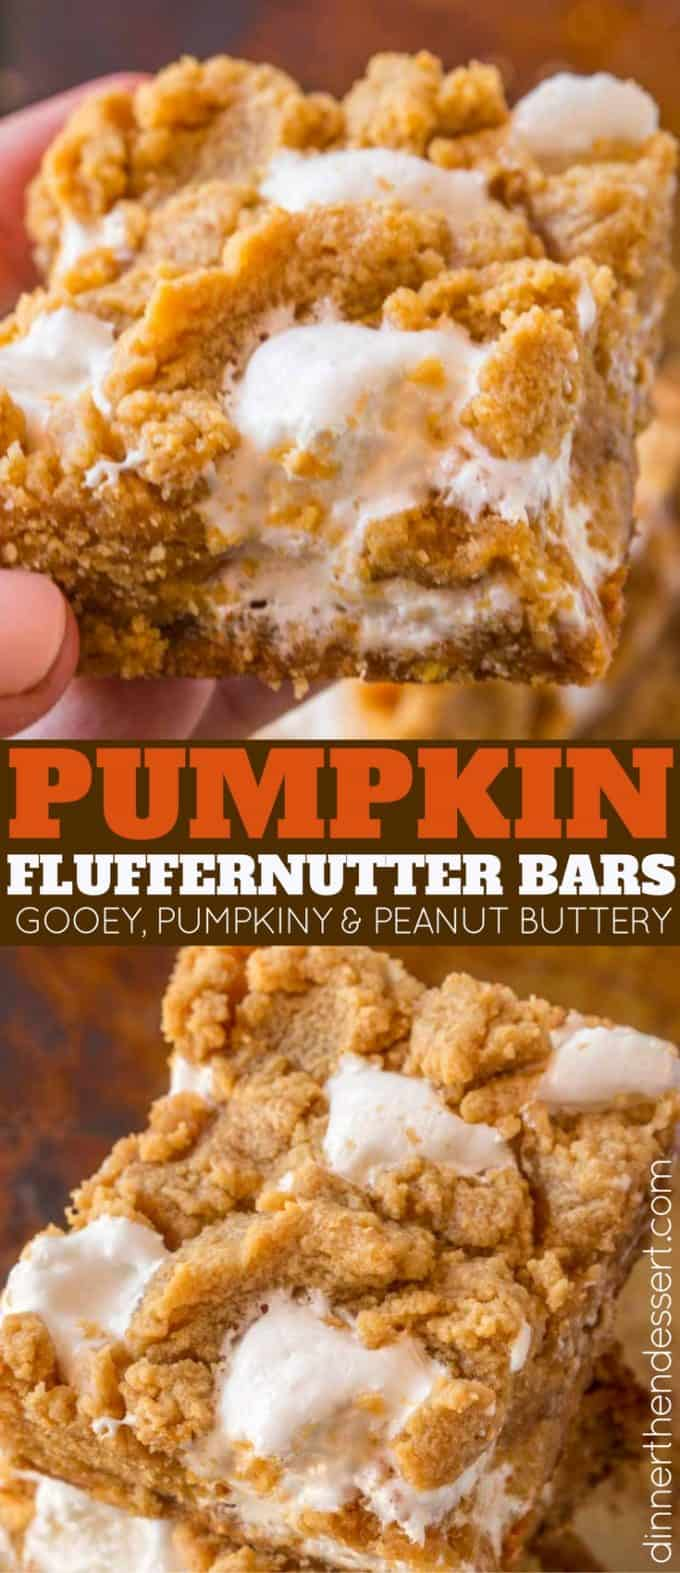 These Pumpkin Fluffernutter Bars are AMAZING. Perfect to kick off pumpkin season!